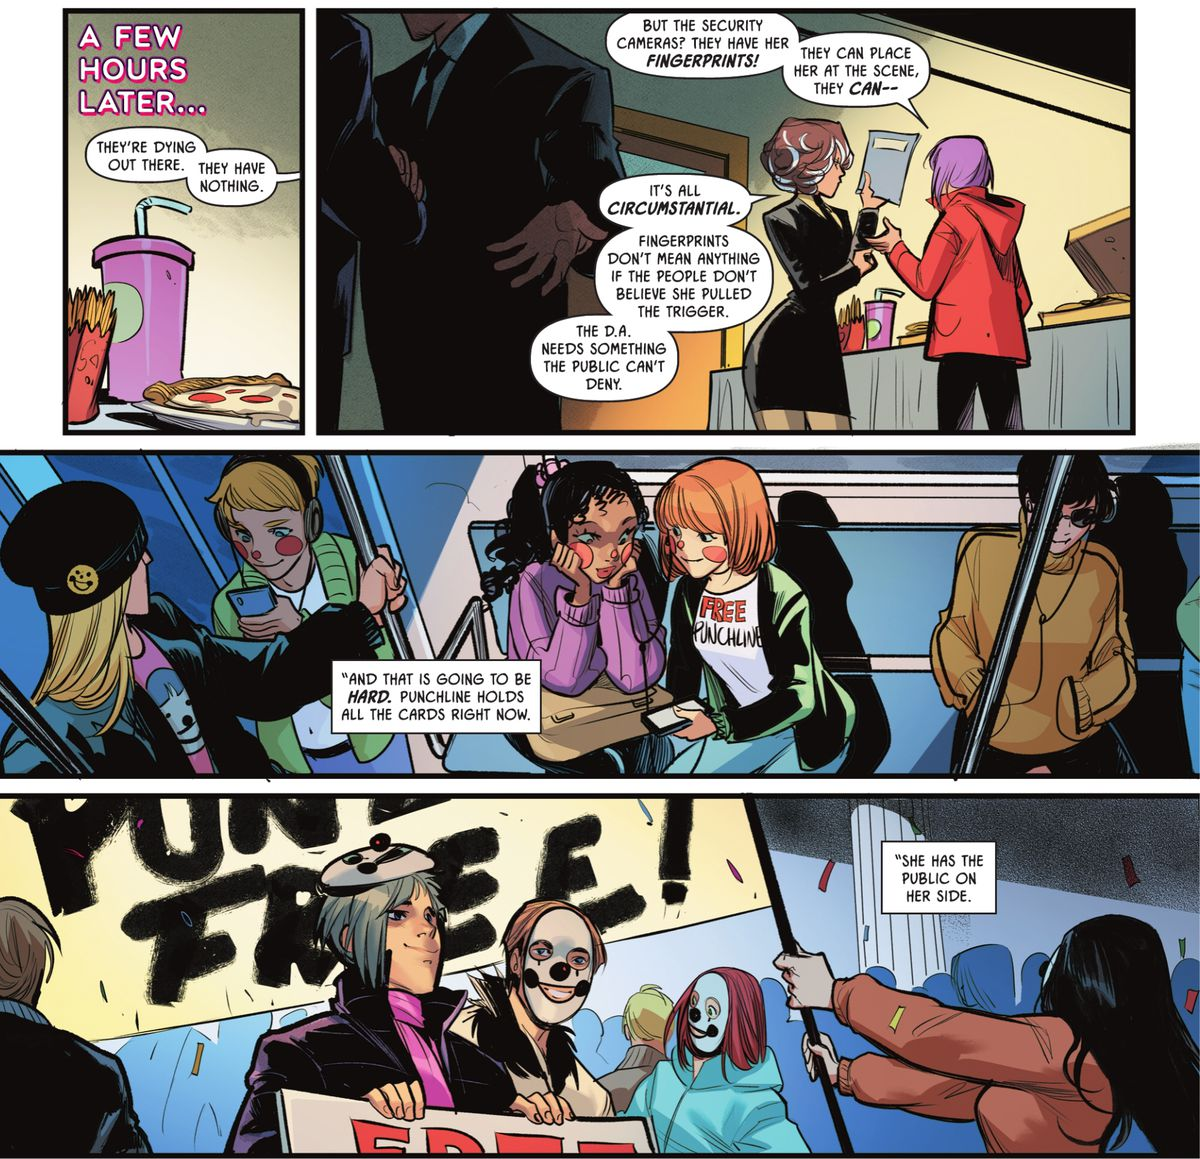 """Leslie Tompkins and Harper Row discuss Punchline's court case. The prosecution is floundering and """"she has the public on her side,"""" in The Joker #1, DC Comics (2021)."""